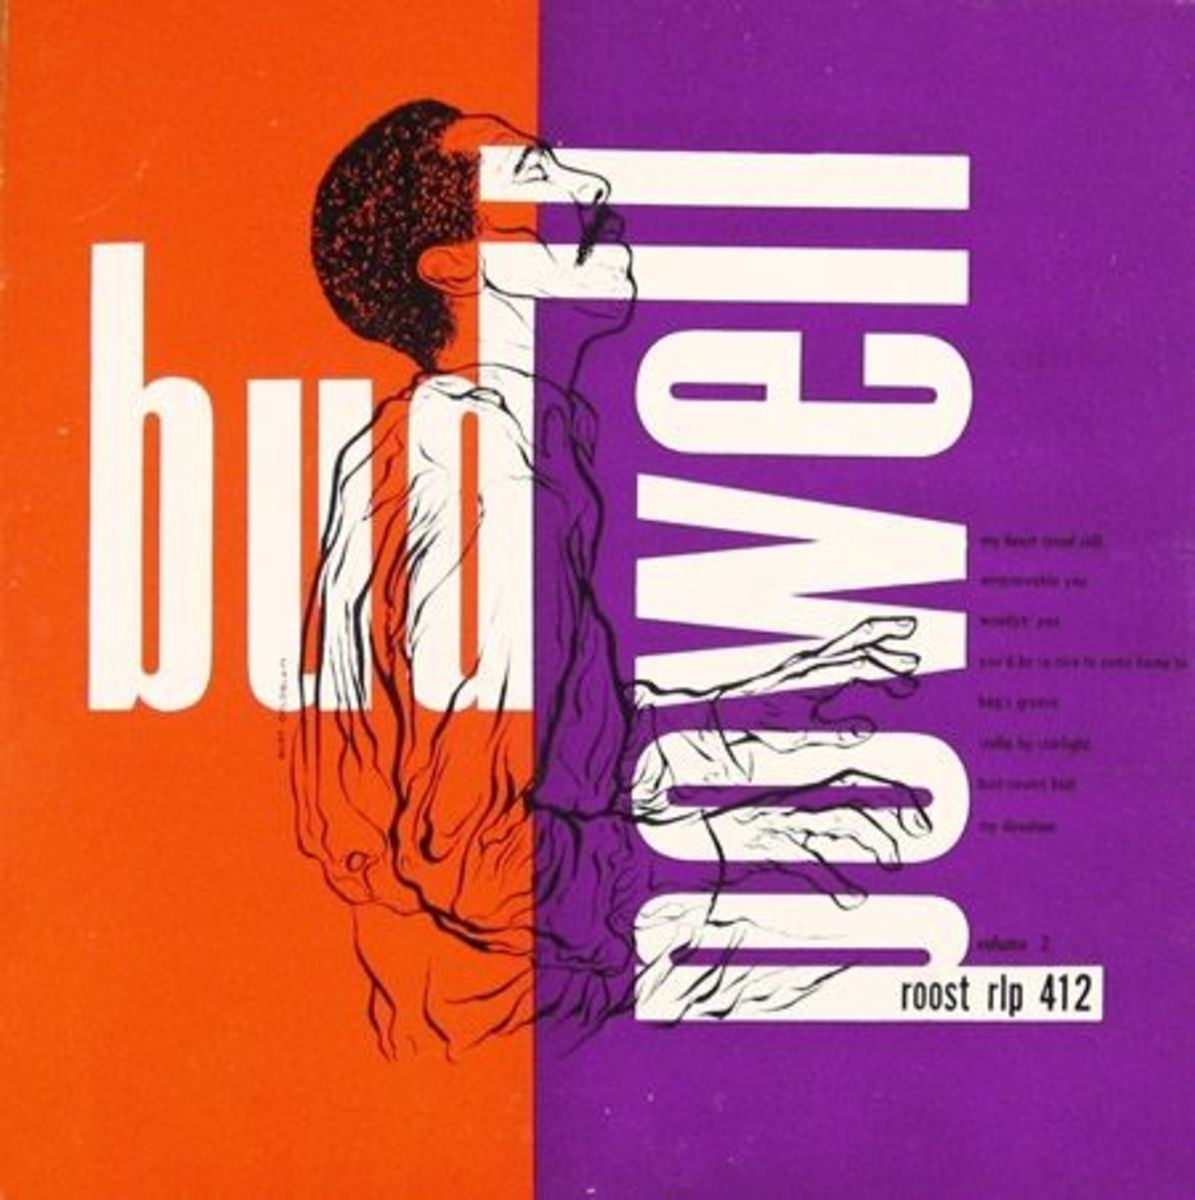 "Bud Powell ""The Bud Powell Trio Vol 2"" Roost Records 412 10"" LP Vinyl Record (1953) Album Cover Art & Design by Burt Goldblatt"